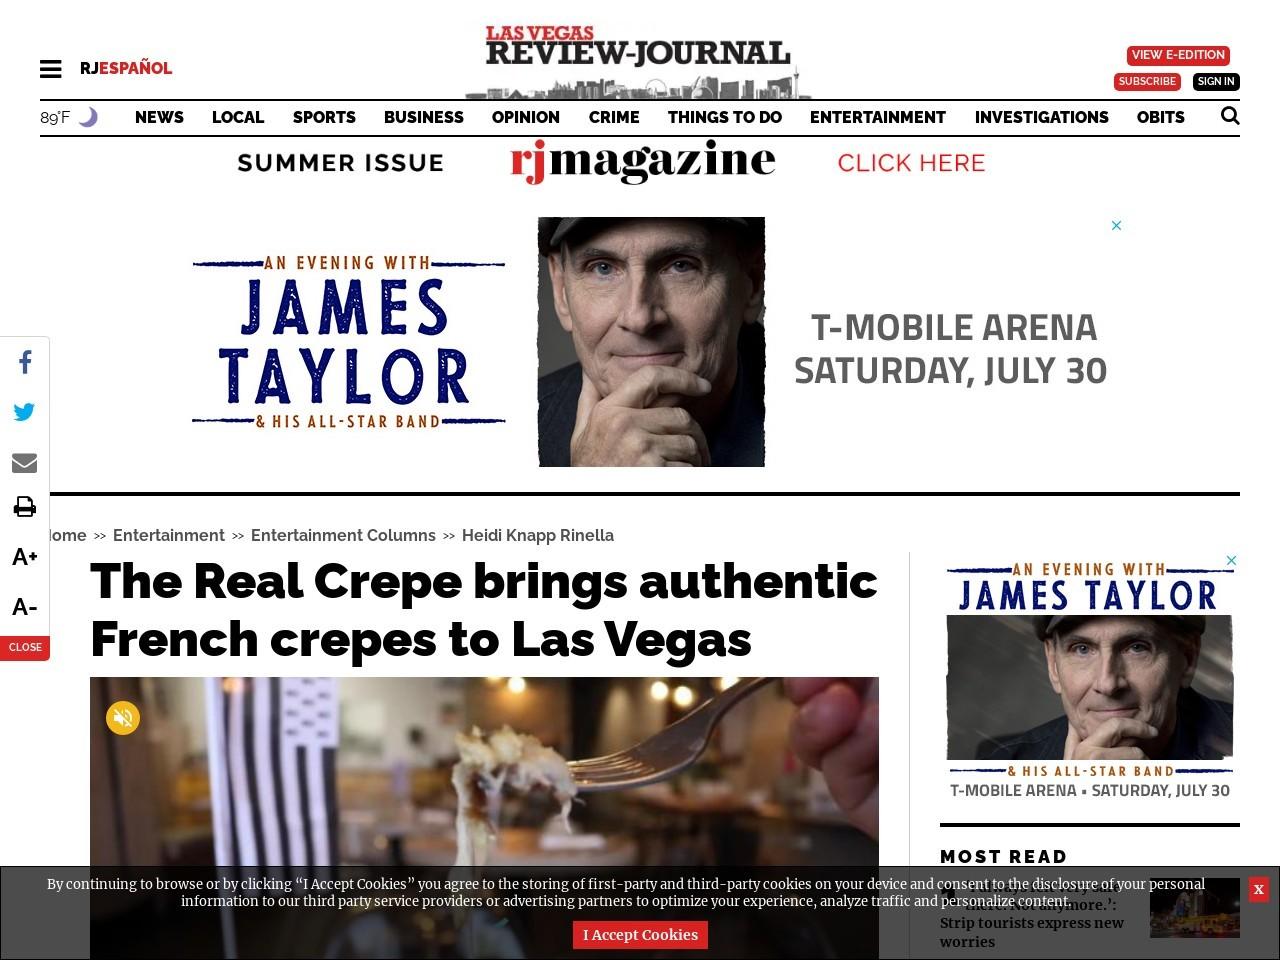 The Real Crepe brings authentic French crepes to Las Vegas